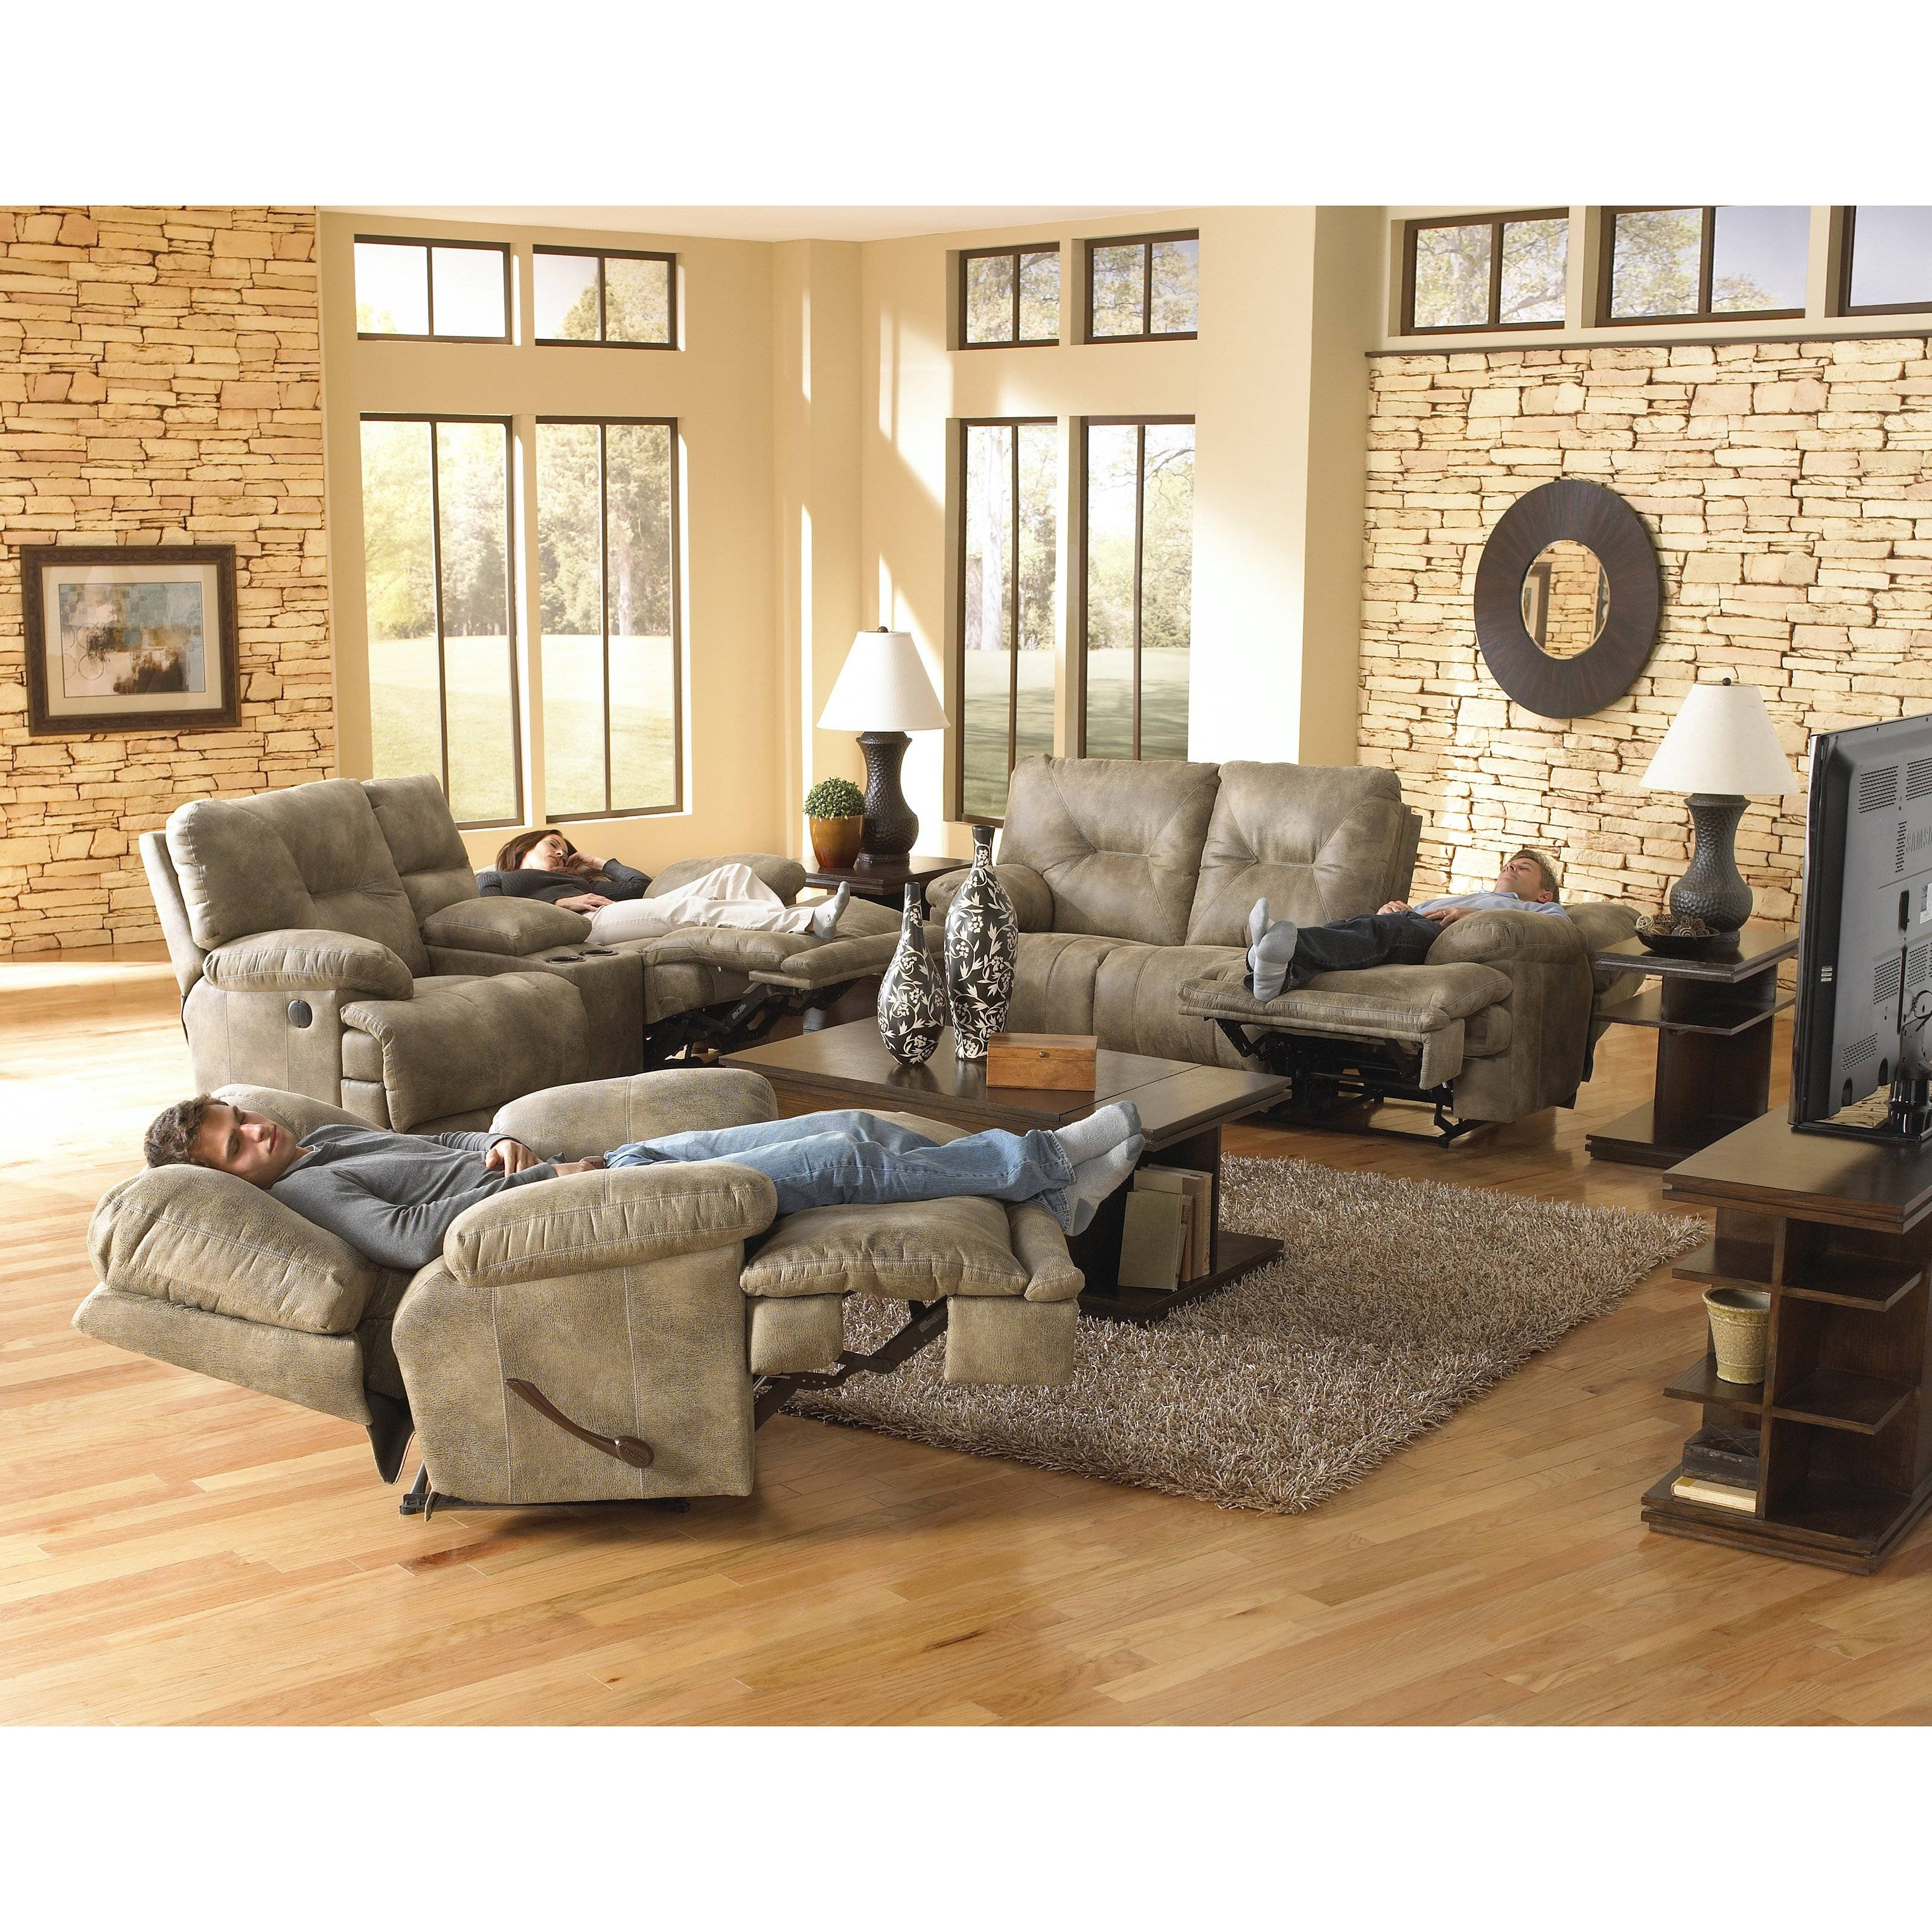 Catnapper Voyager Reclining Sofa Set - Brandy | Hayneedle with regard to Catnapper Reclining Sofas (Image 9 of 15)